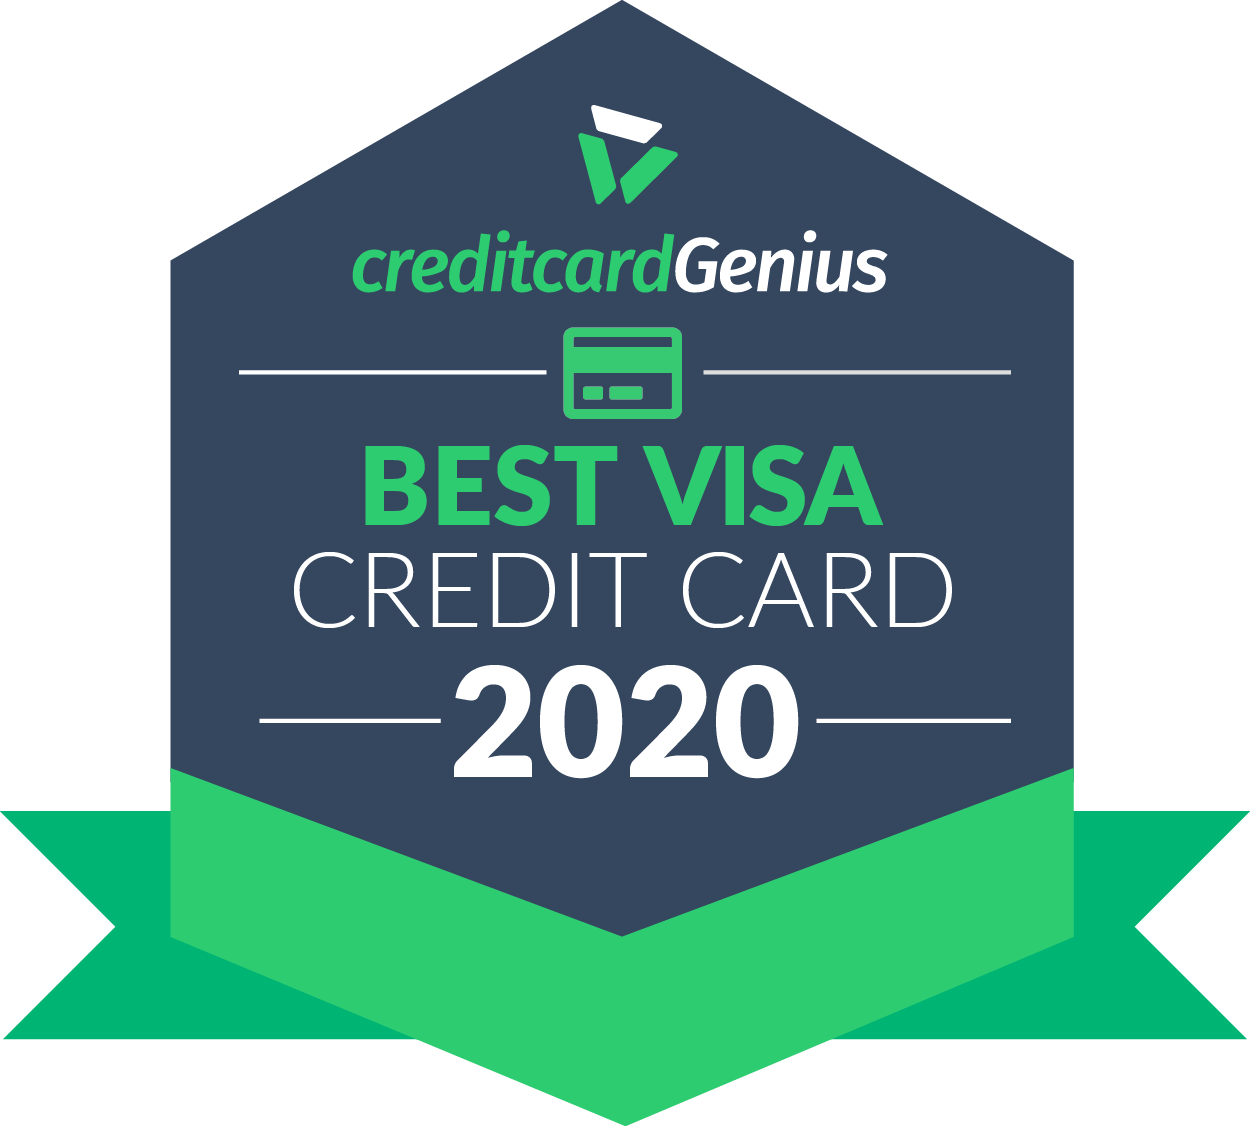 Best Visa credit card in Canada for 2020 award seal